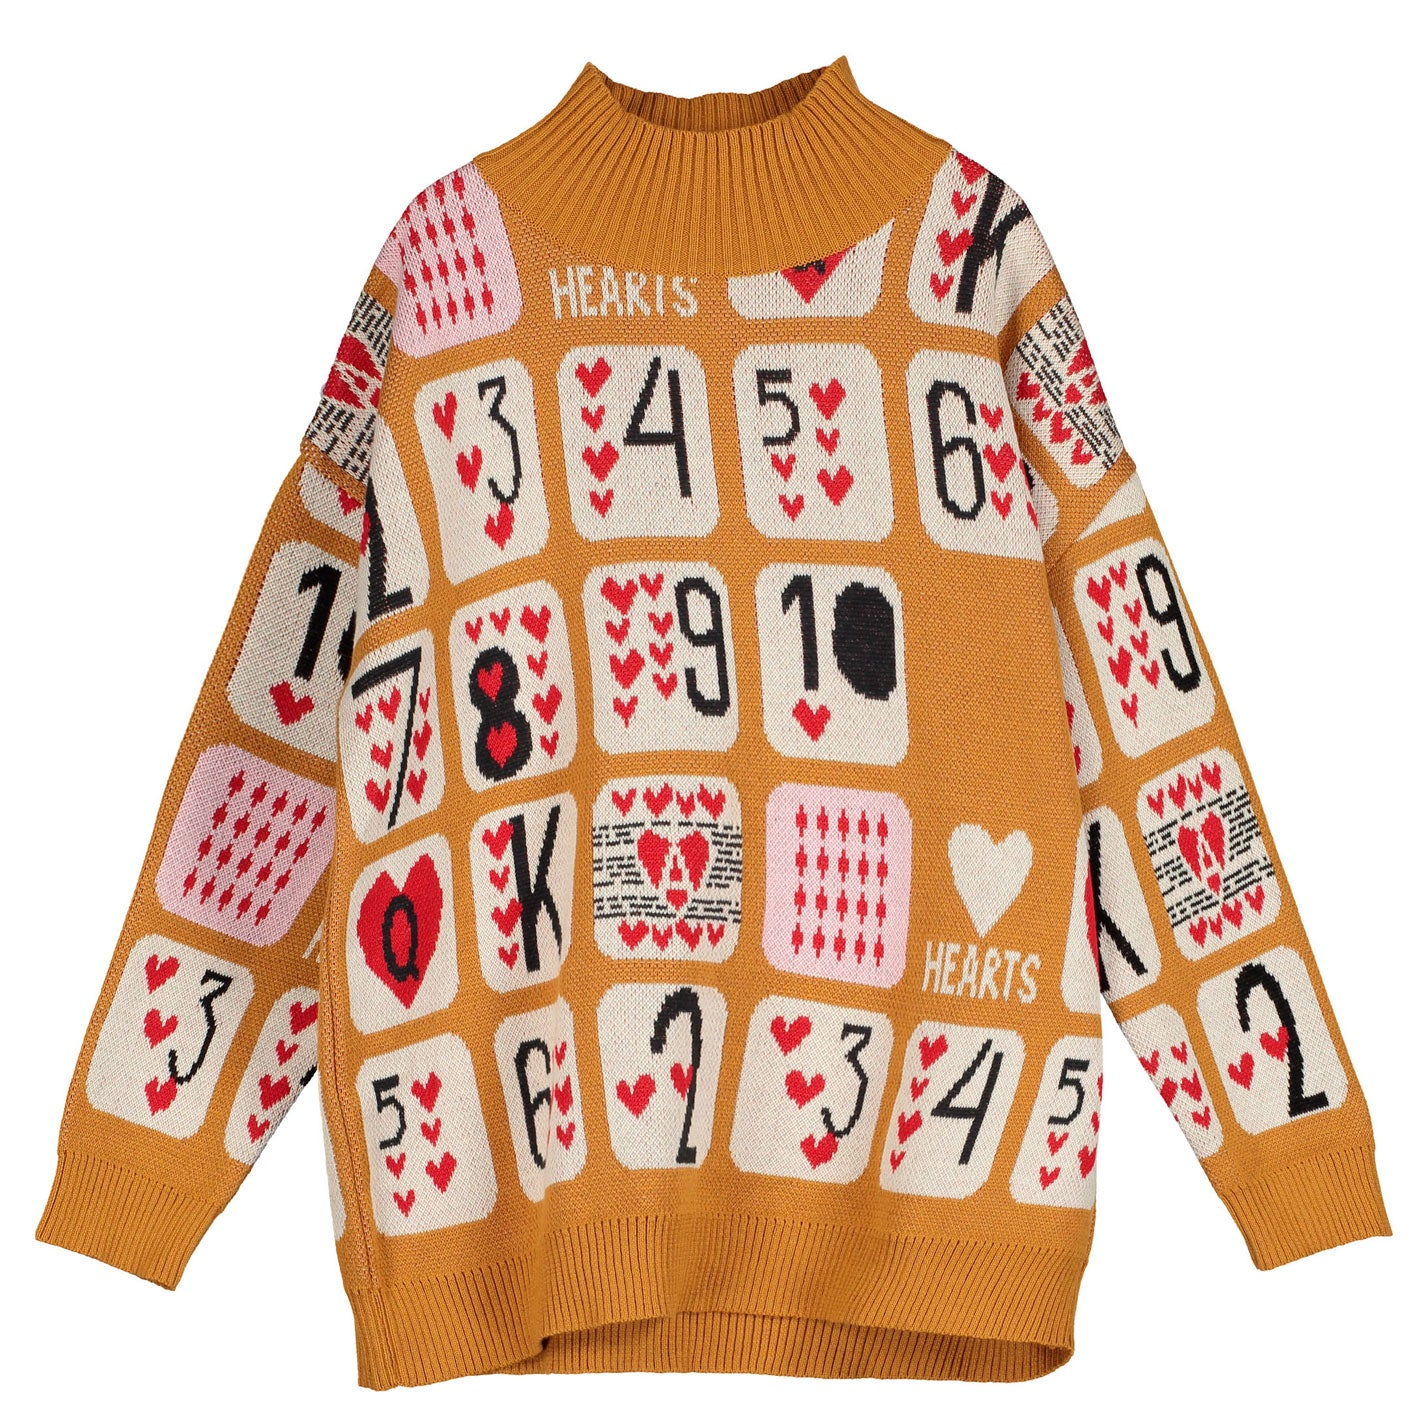 Beau Loves Camel Game of Hearts Knit High Collar Sweater